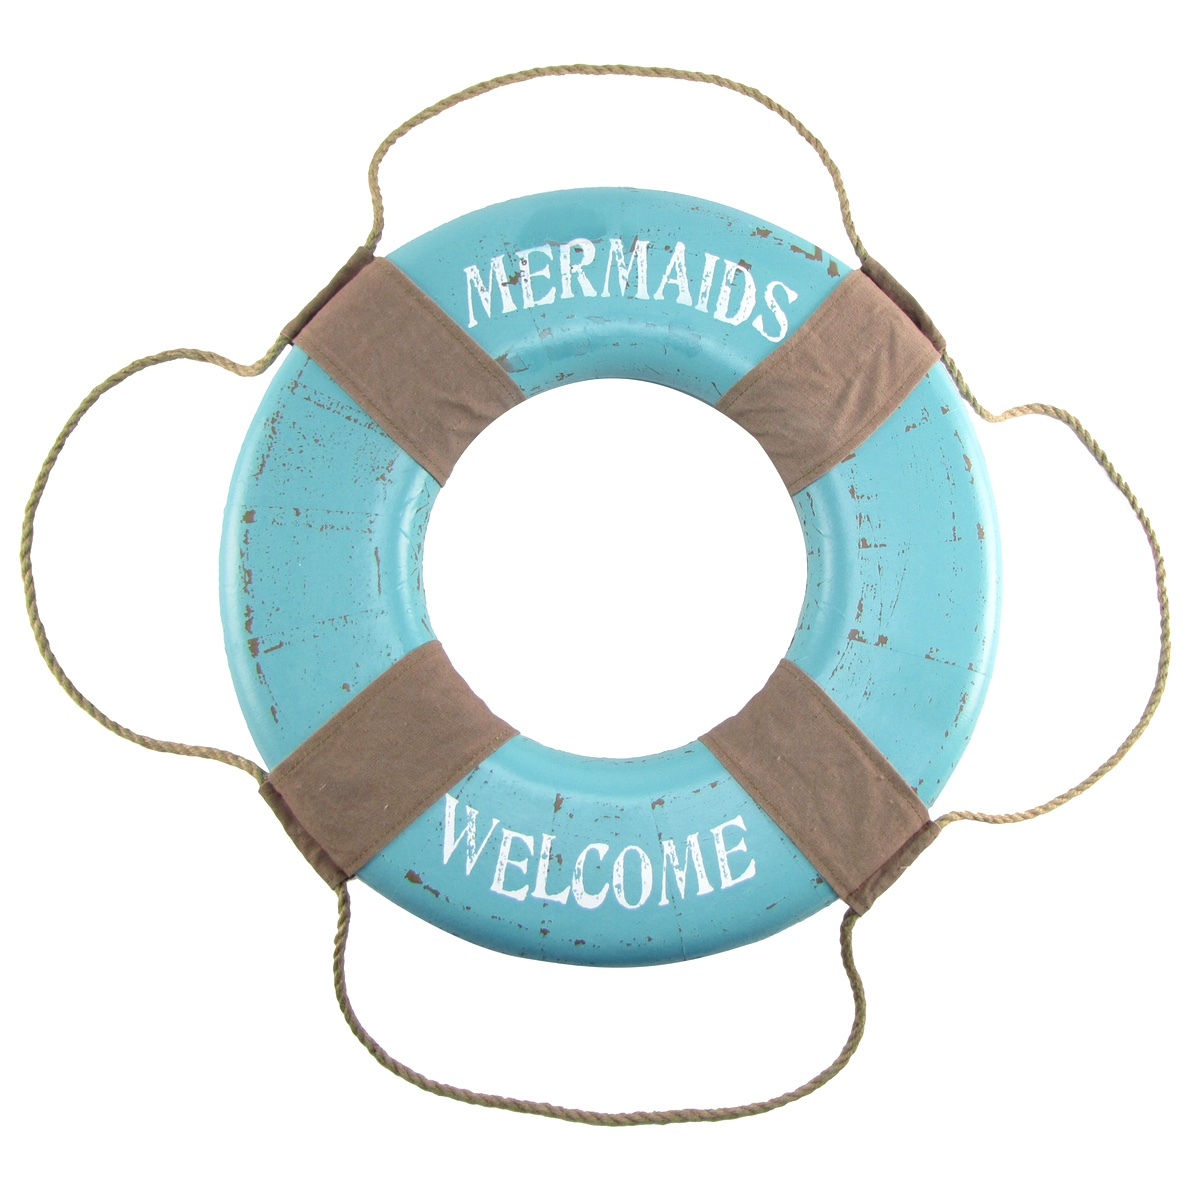 Attractive Mermaids Welcome Life Saver Preserver Ring Big Nautical Beach Mermaid Wall  Decor